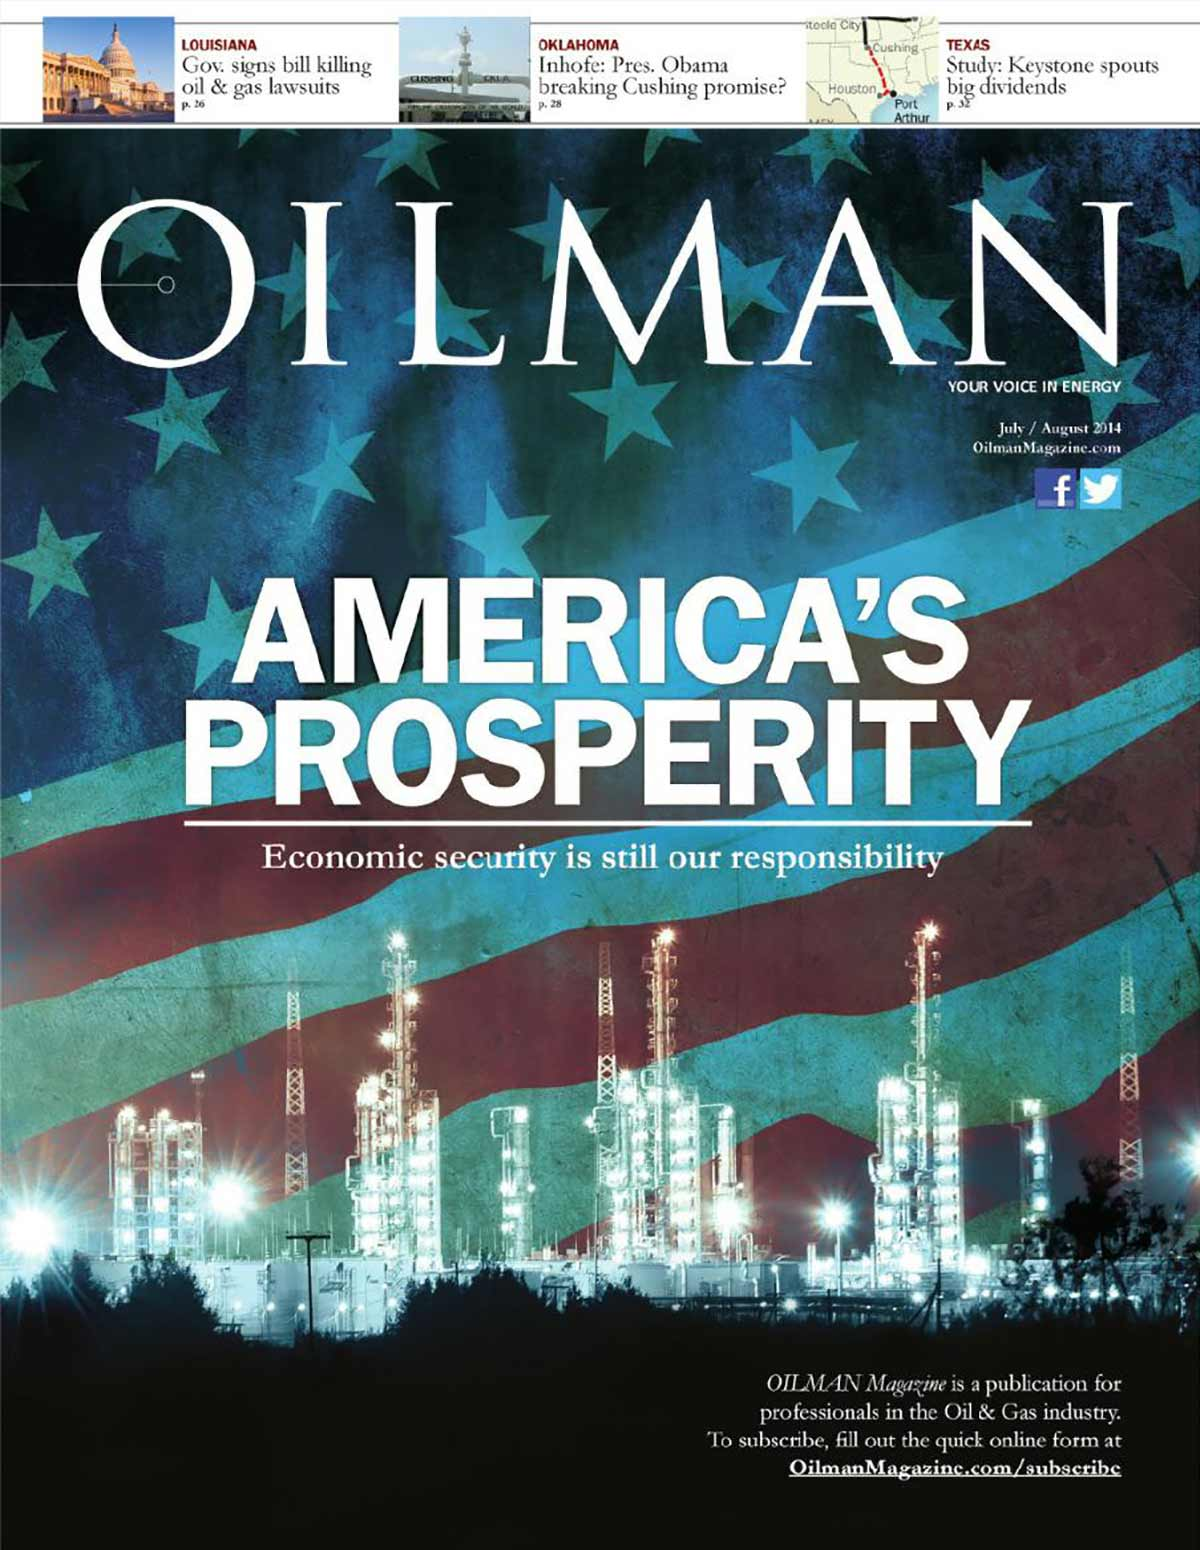 TexasOilmanMagazineCover-July-August-2014